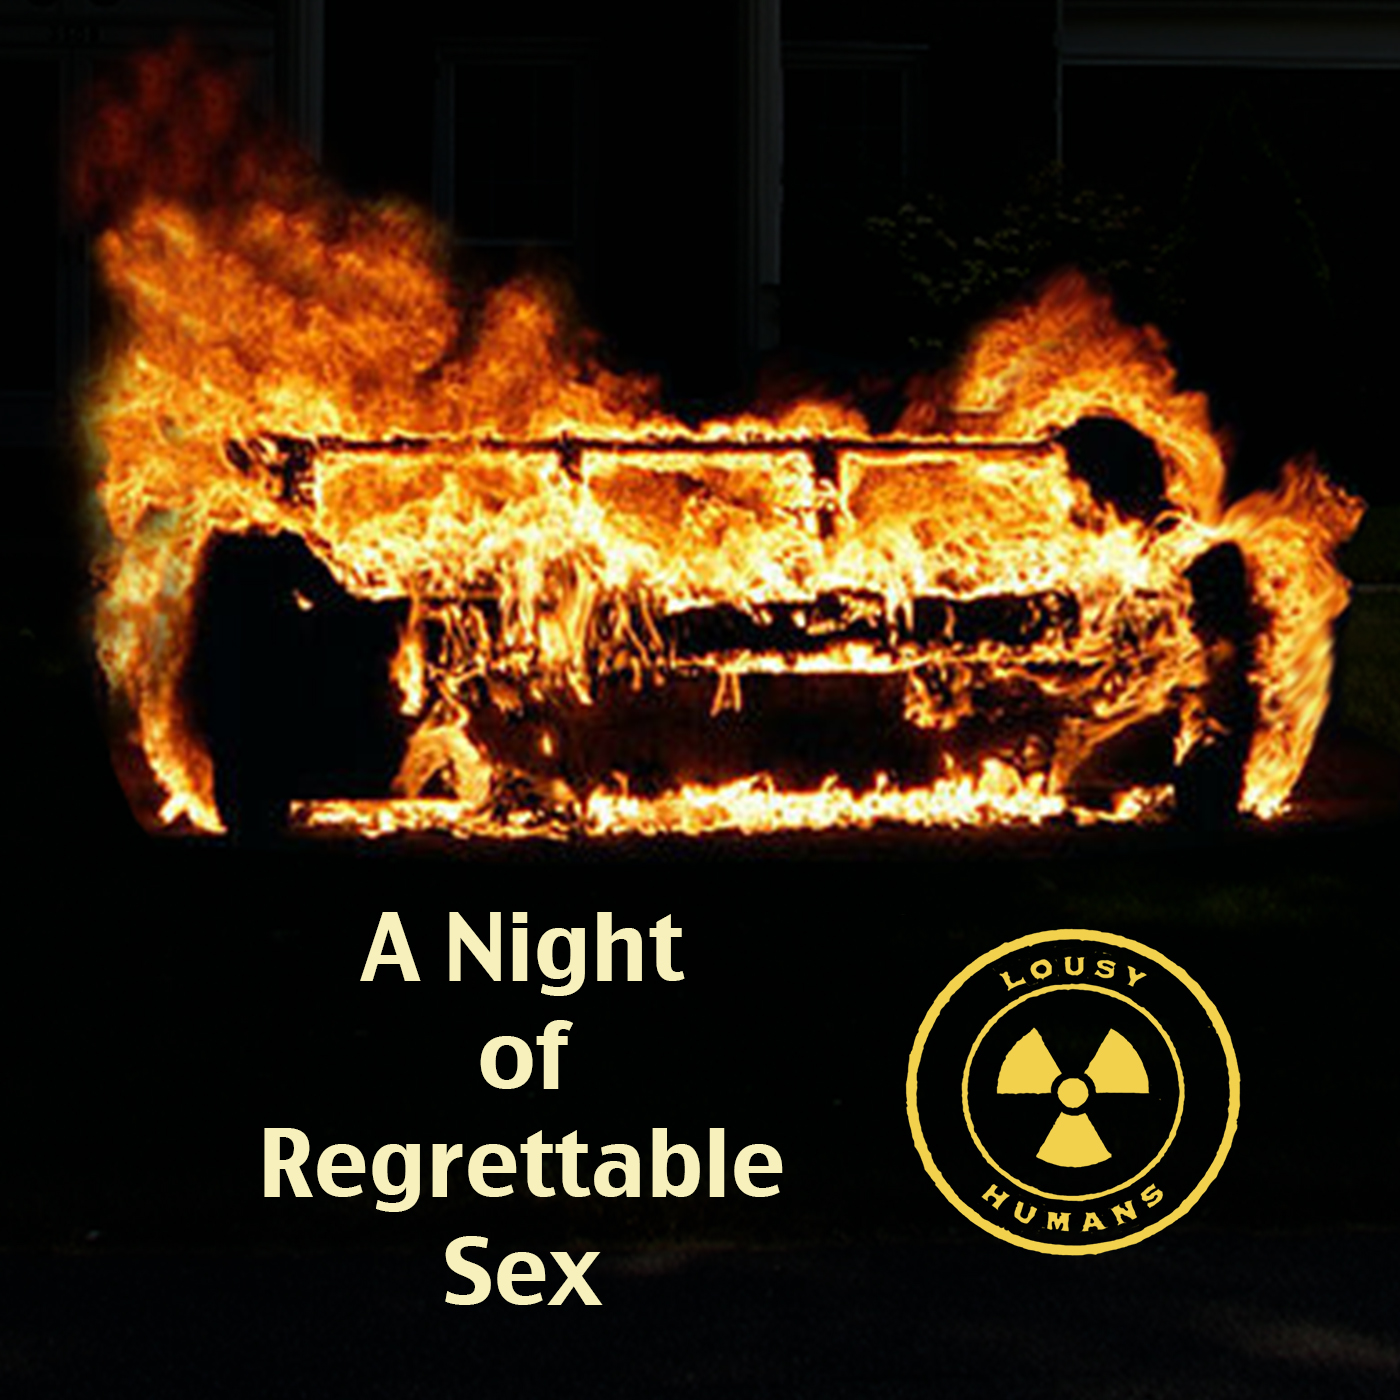 A Night of Regrettable Sex